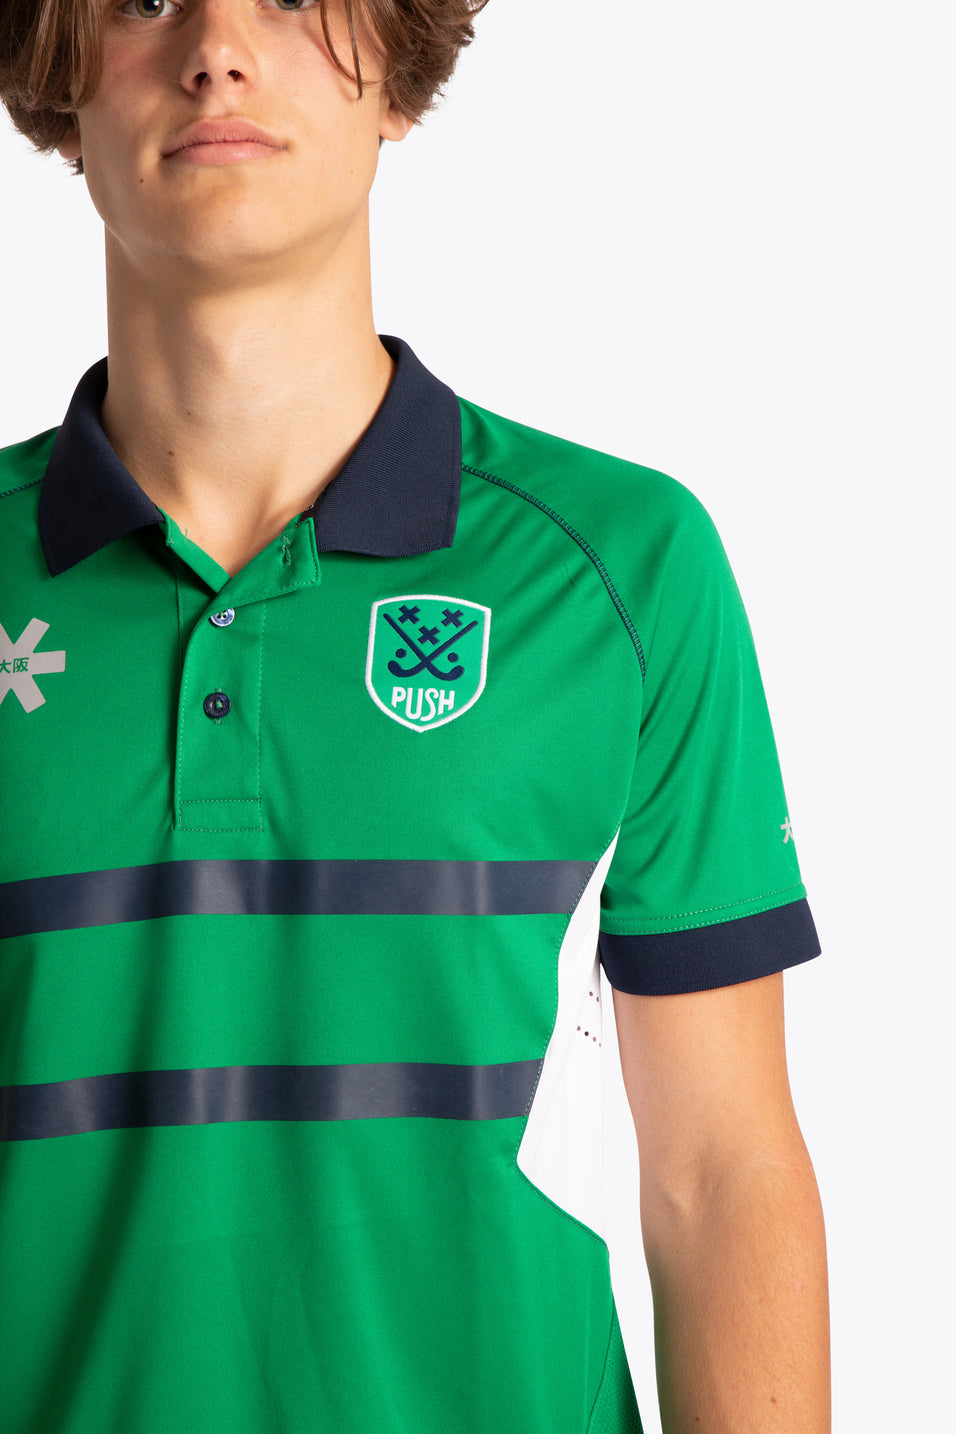 BHV Push Men Polo Jersey - Green / White